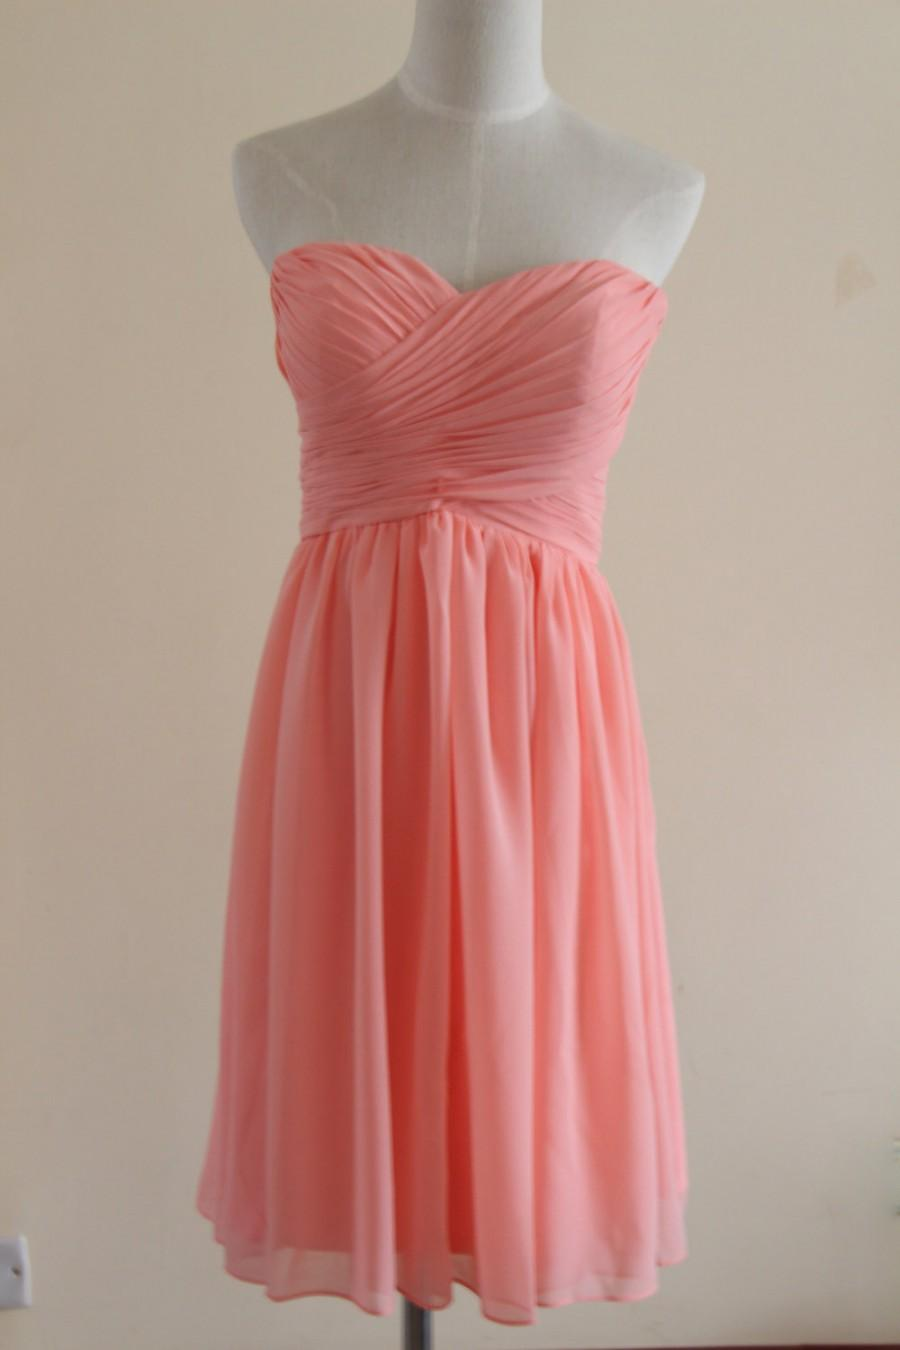 Mariage - Coral Sweetheart knee-length Bridesmaid Dress Short Coral Strapless Bridesmaid Dress